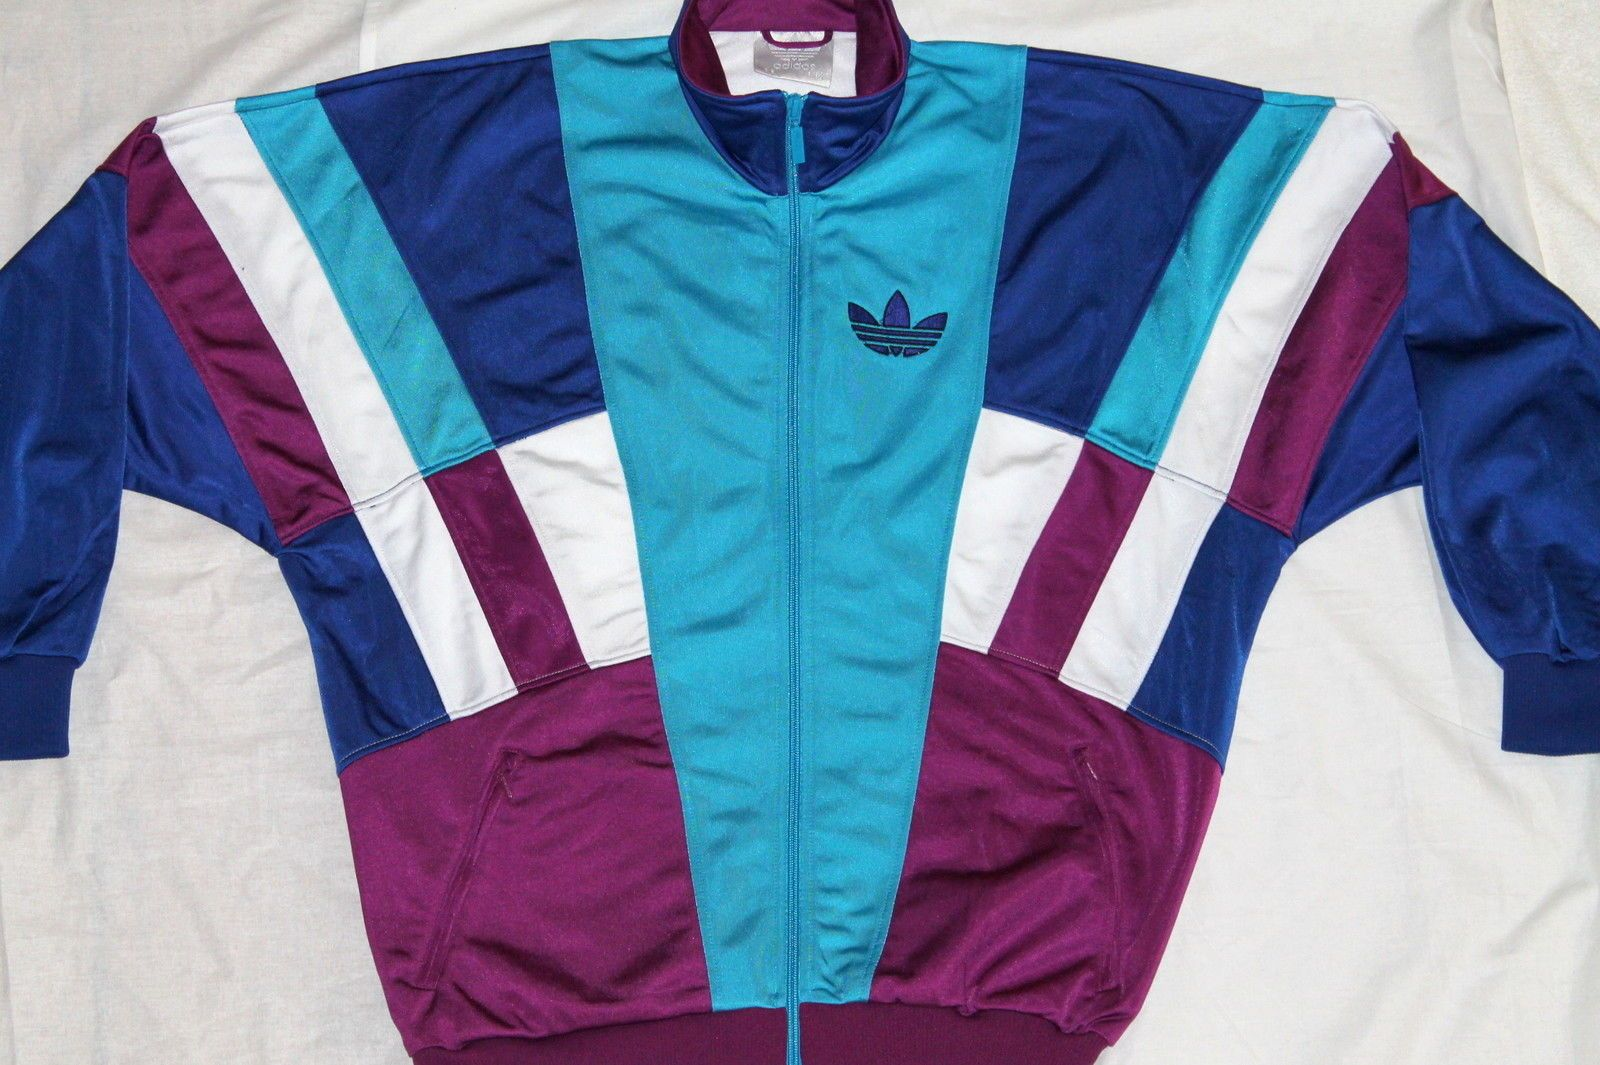 Firebird Vintage Top 80s oversized d3 Adidas Tracksuit jacketRetro f6g7by